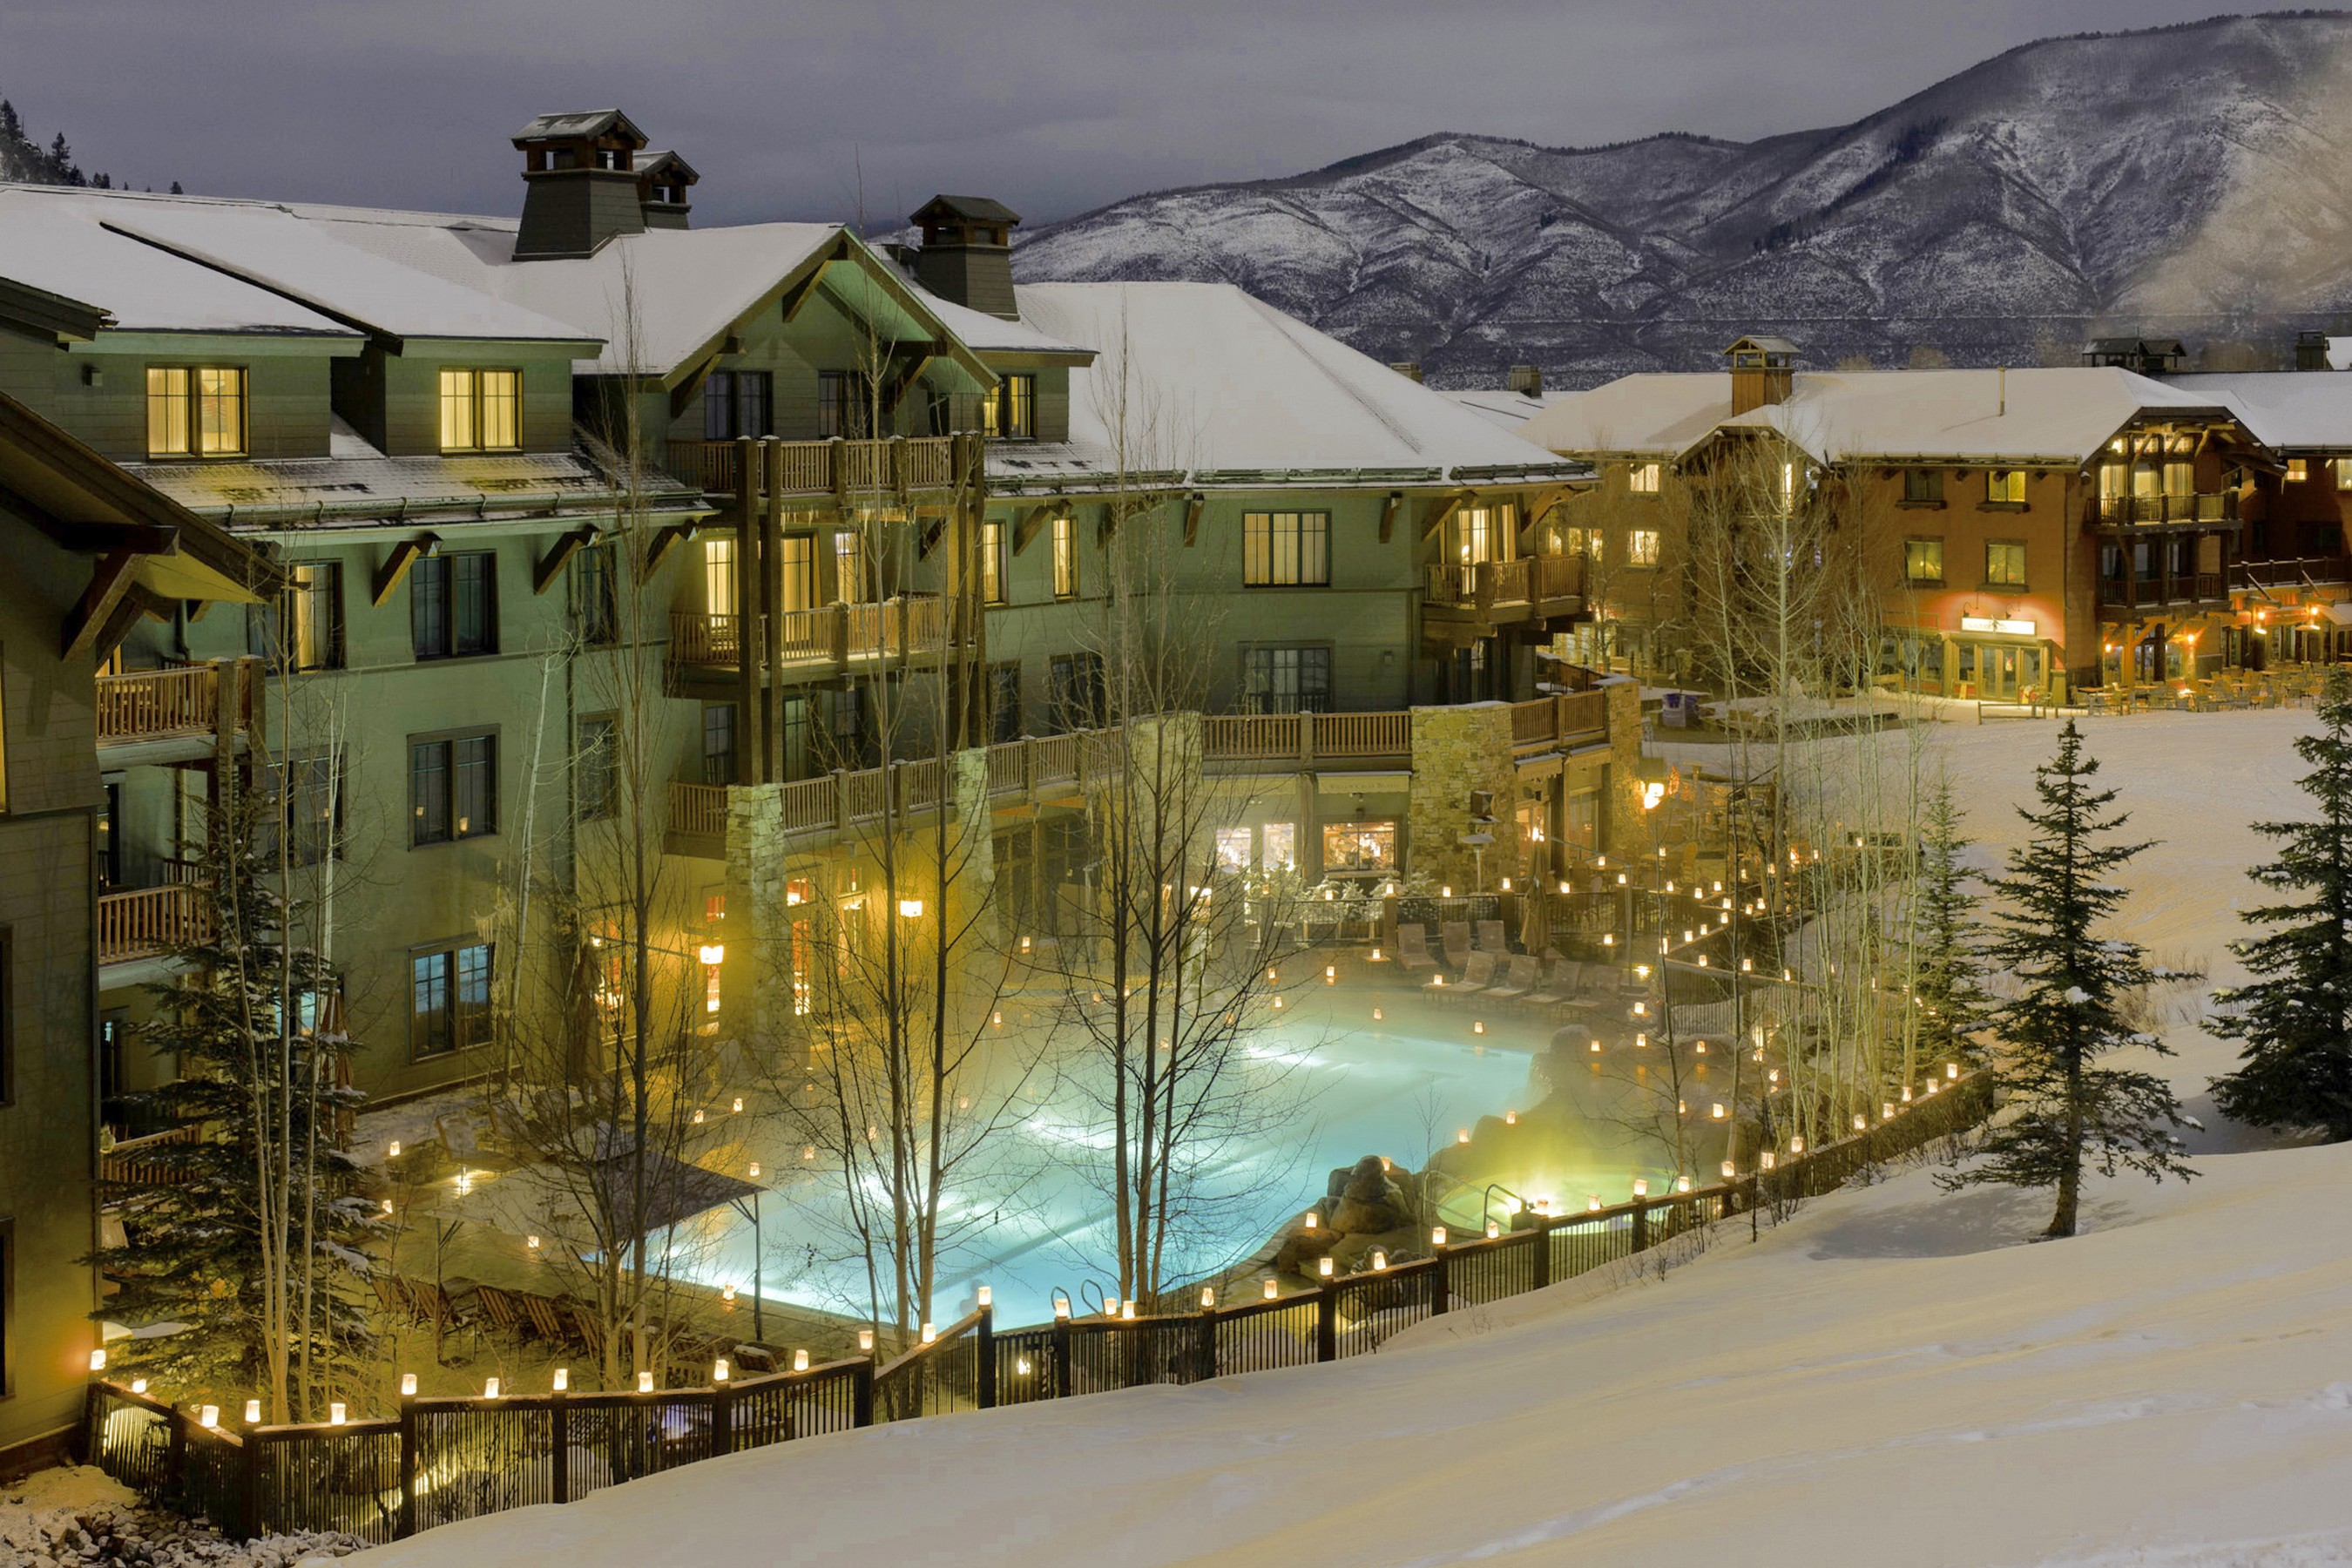 Fractional Ownership for Sale at Ritz-Carlton Club Aspen Highlands Fractional Condo Interest 0075 Prospector Road, 8206, Interest 6, Ritz-Carlton Club Aspen, Colorado, 81611 United States